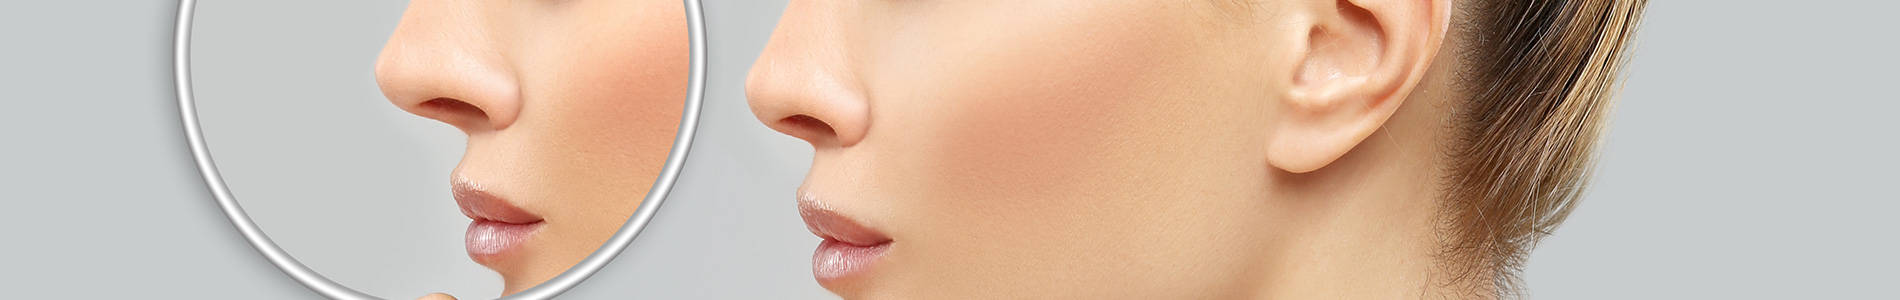 photo-services/rhinoplasty-header.jpg